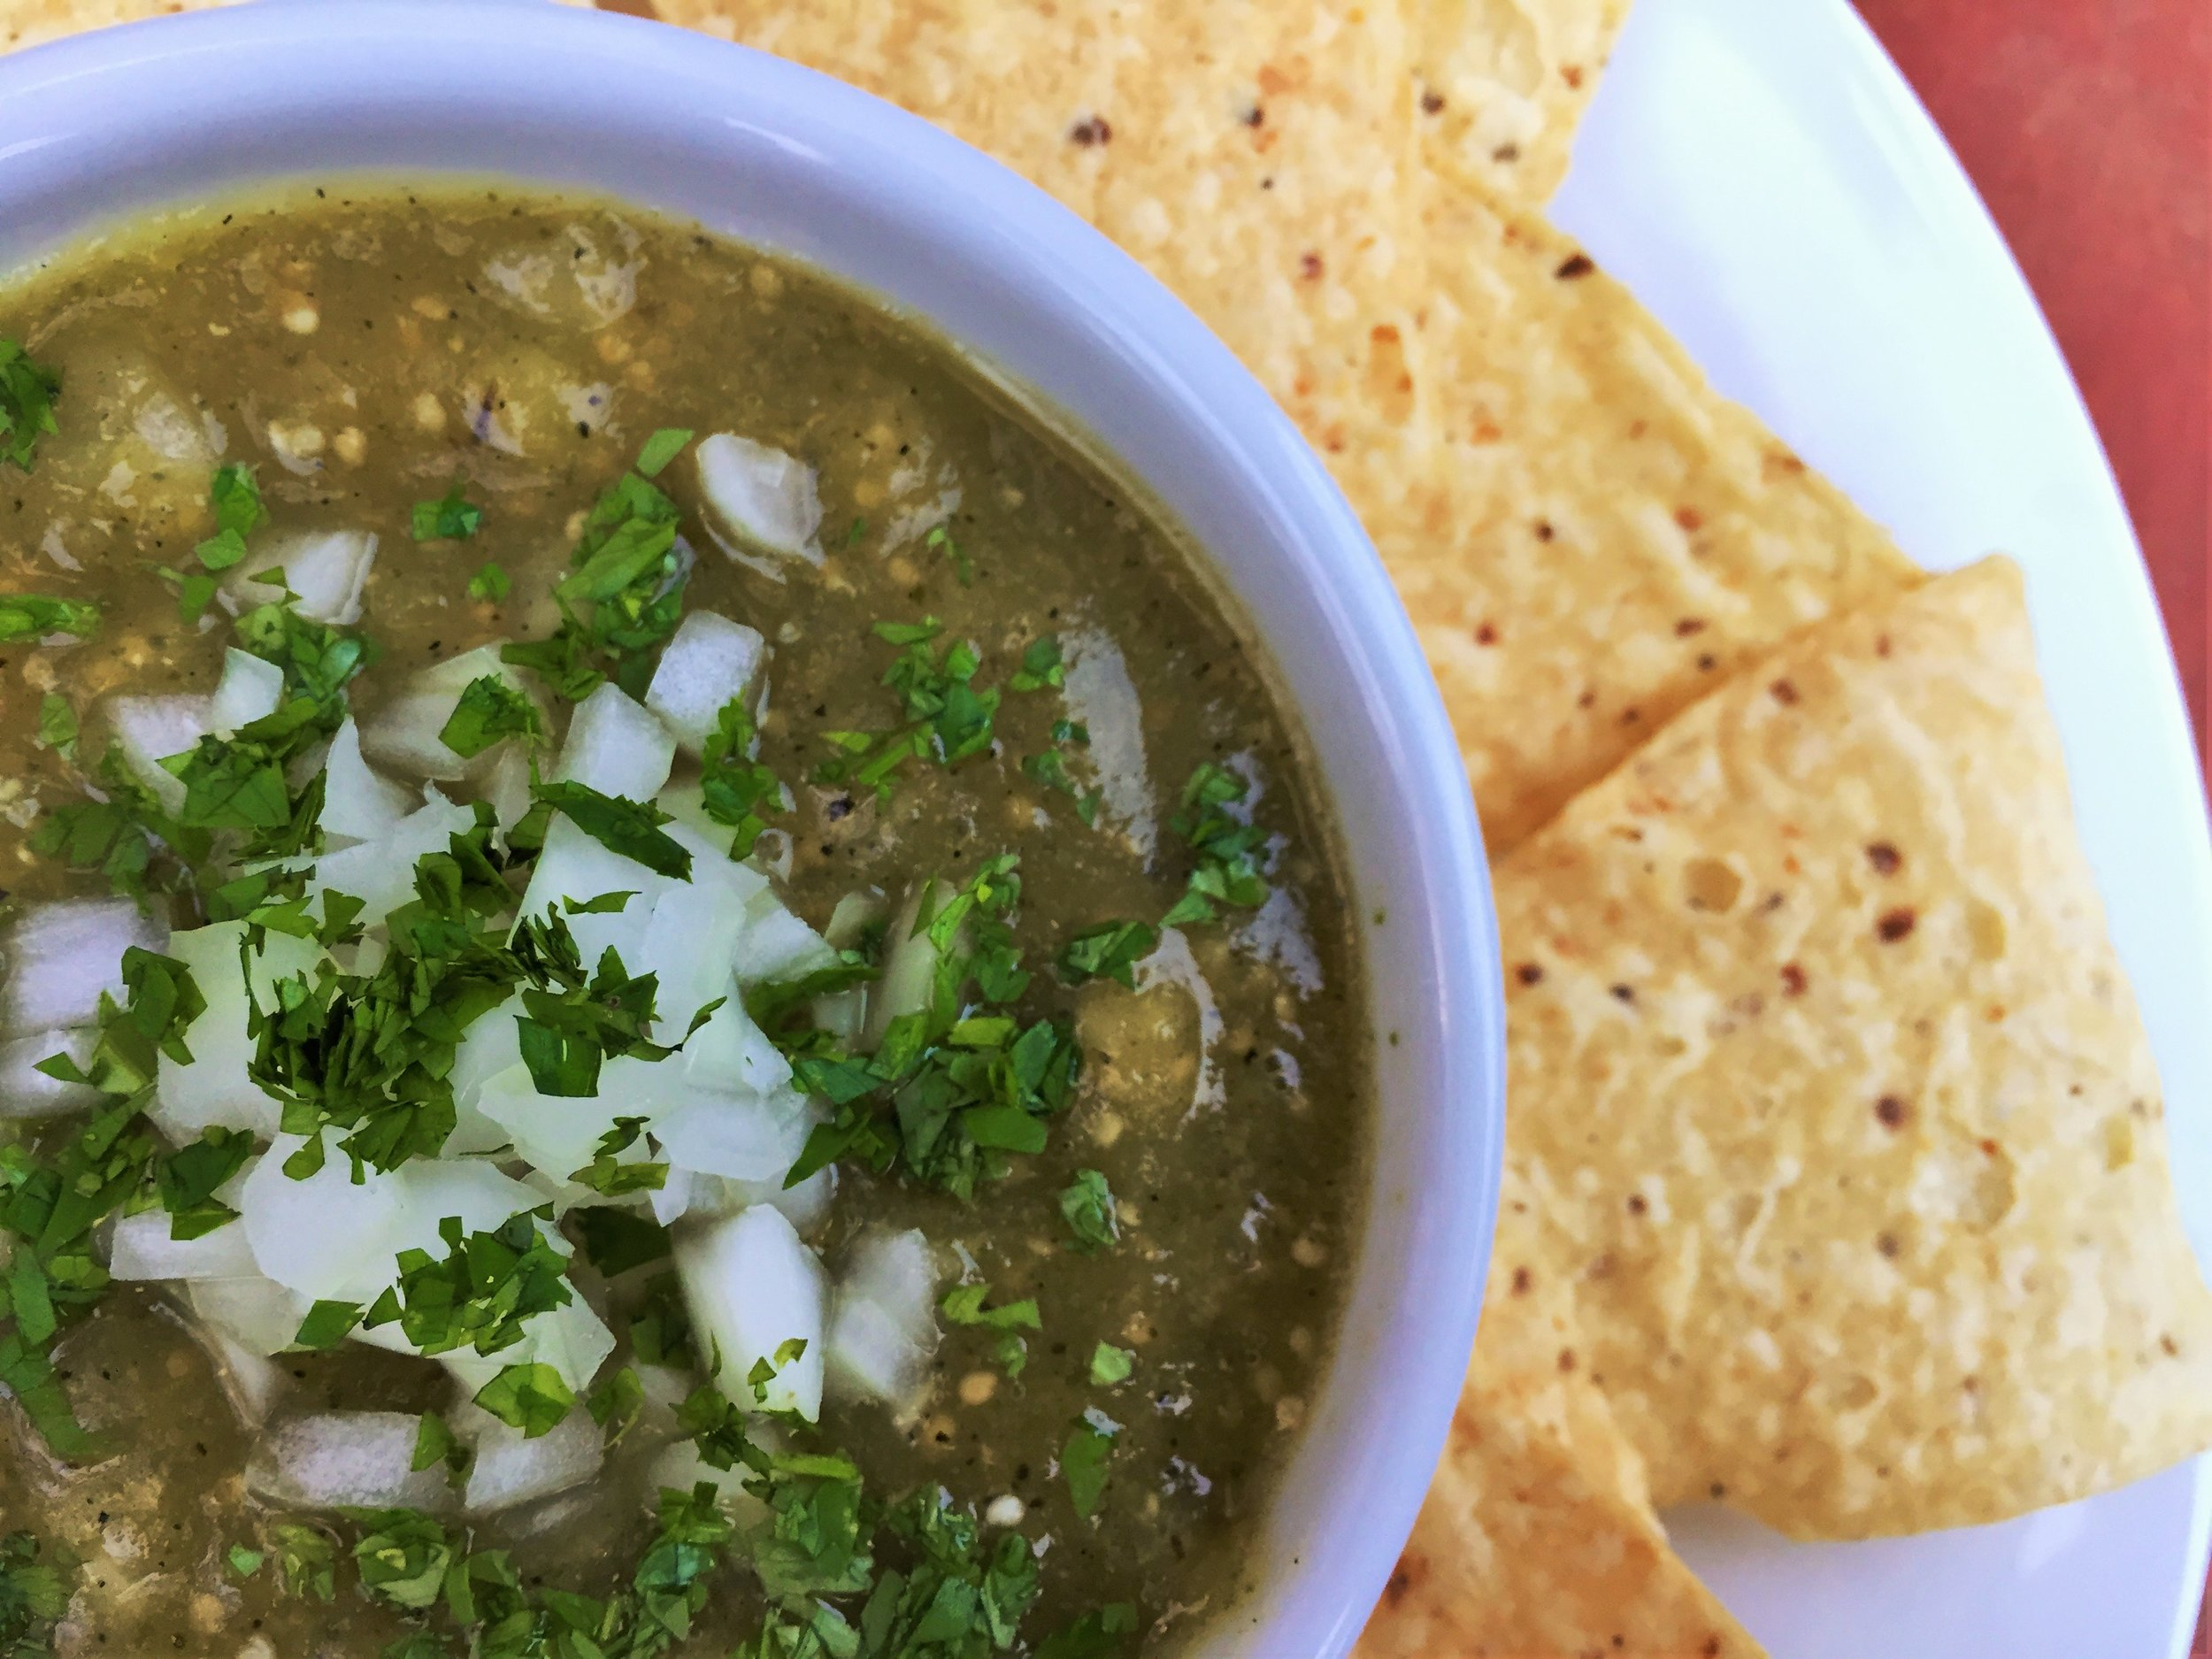 Roasted Tomatillo Salsa made in the Adventure Kitchen.